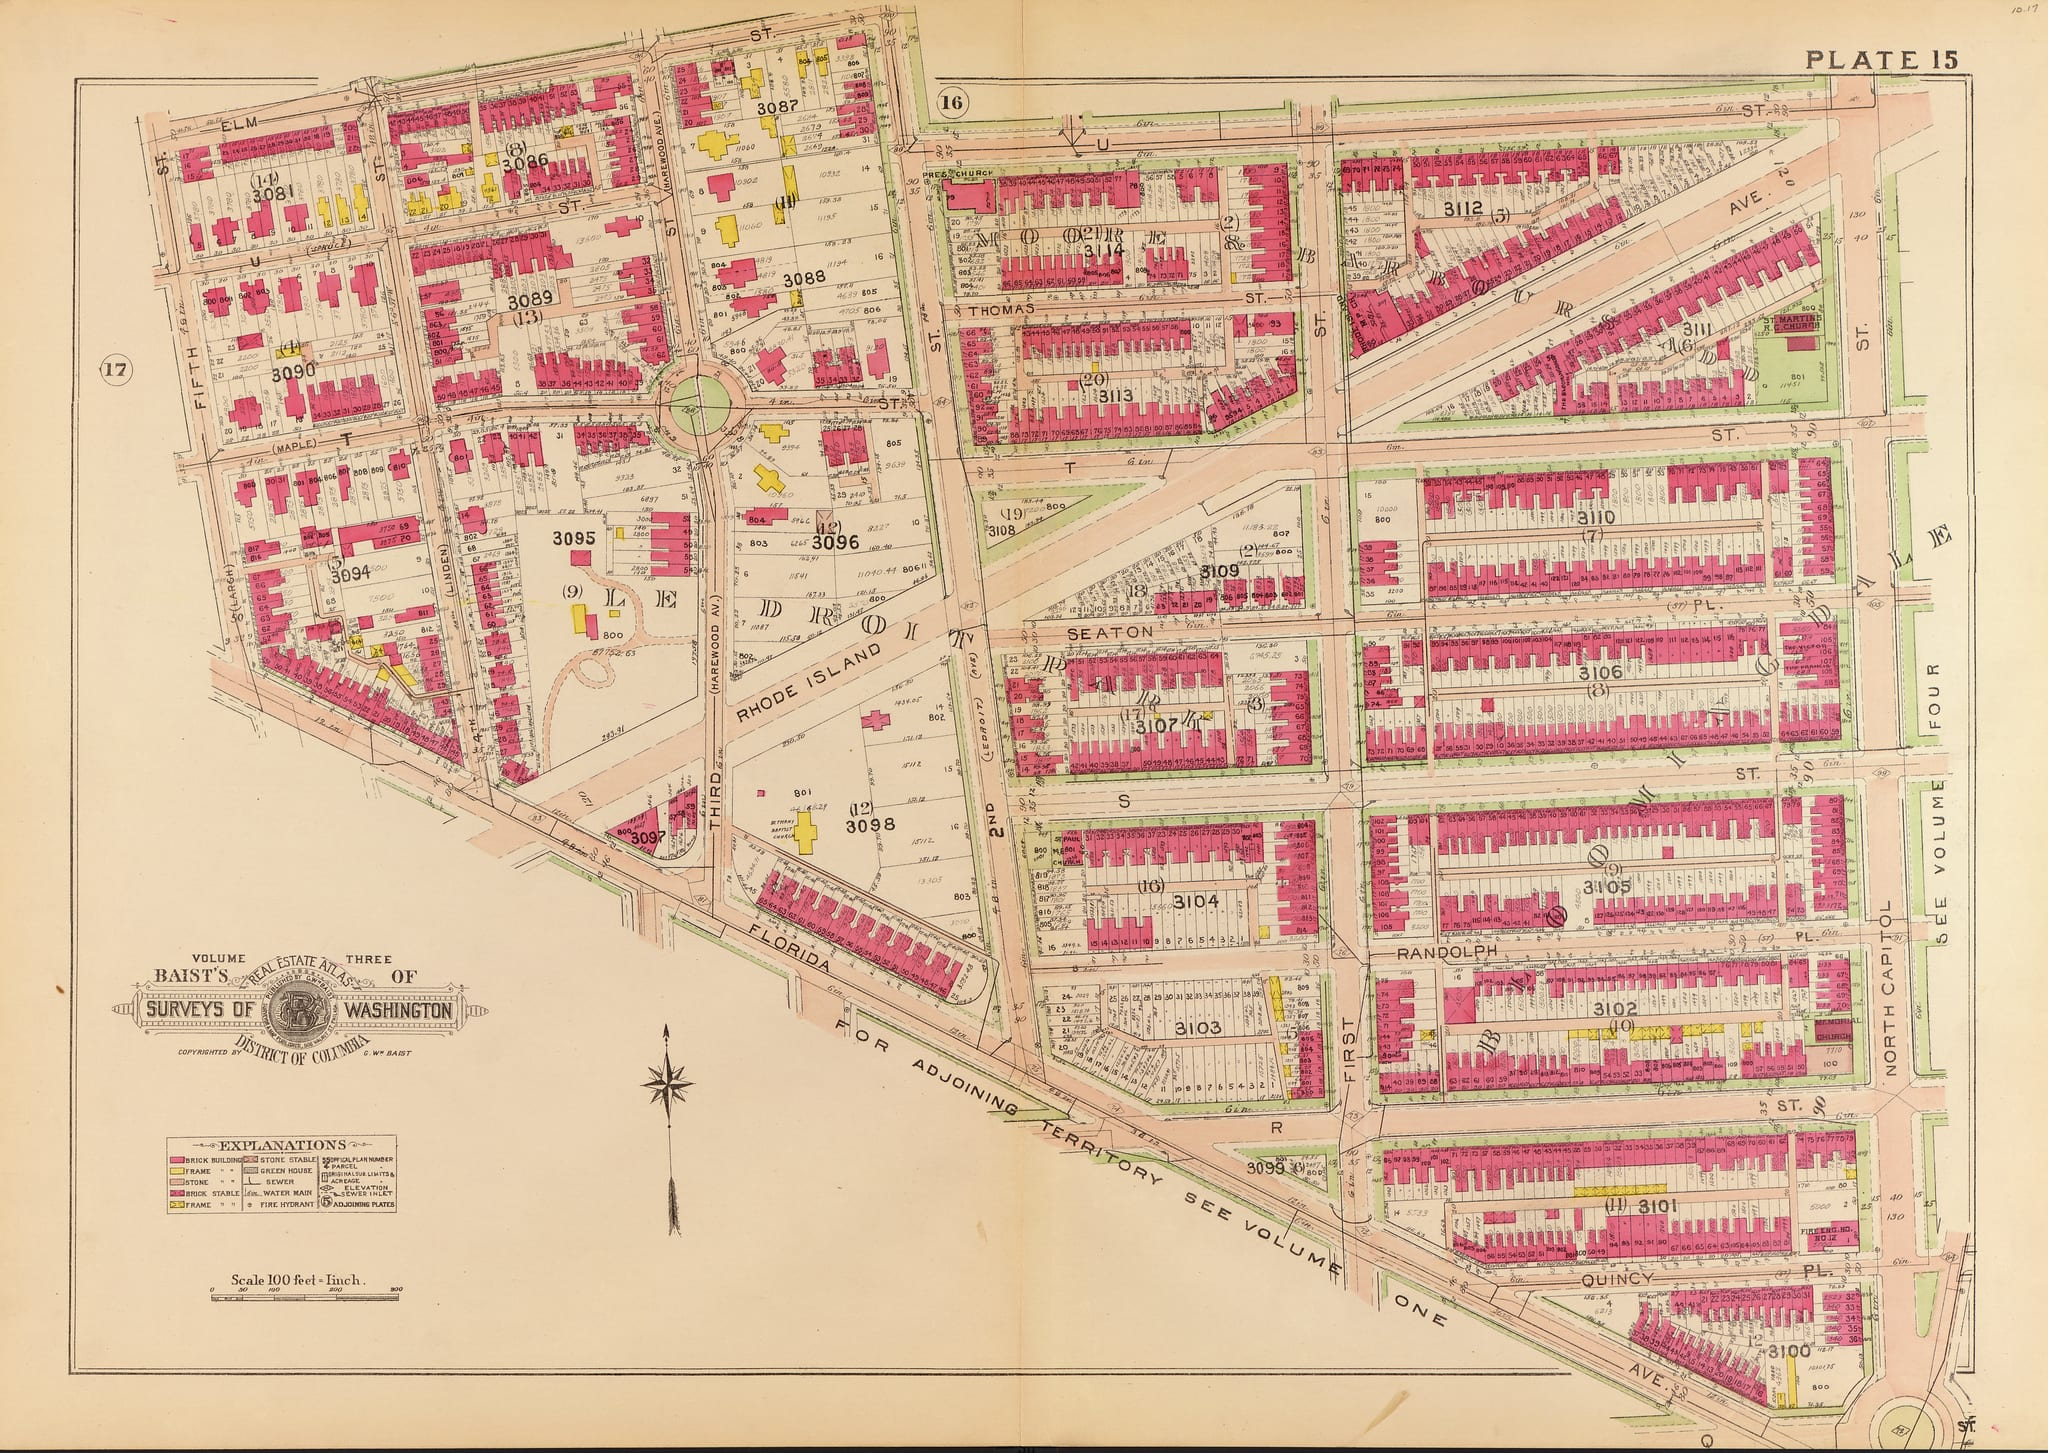 1907 Baist real estate atlas for Ledroit Park and Bloomingdale